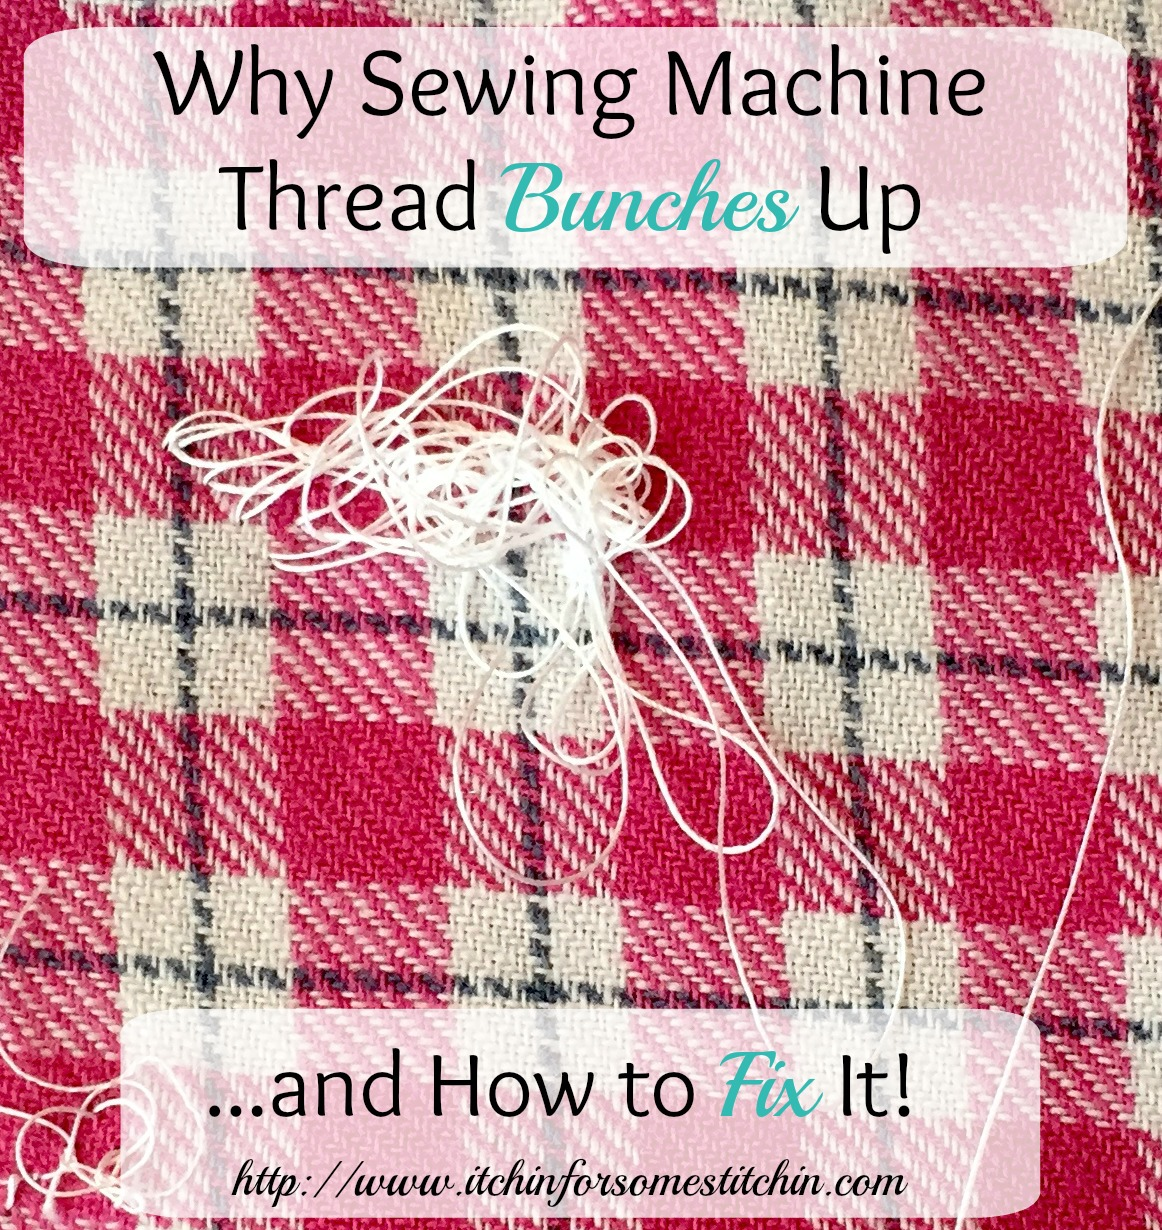 Thread bunching up when using a sewing machine & how to fix it. https://www.itchinforsomestitchin.com